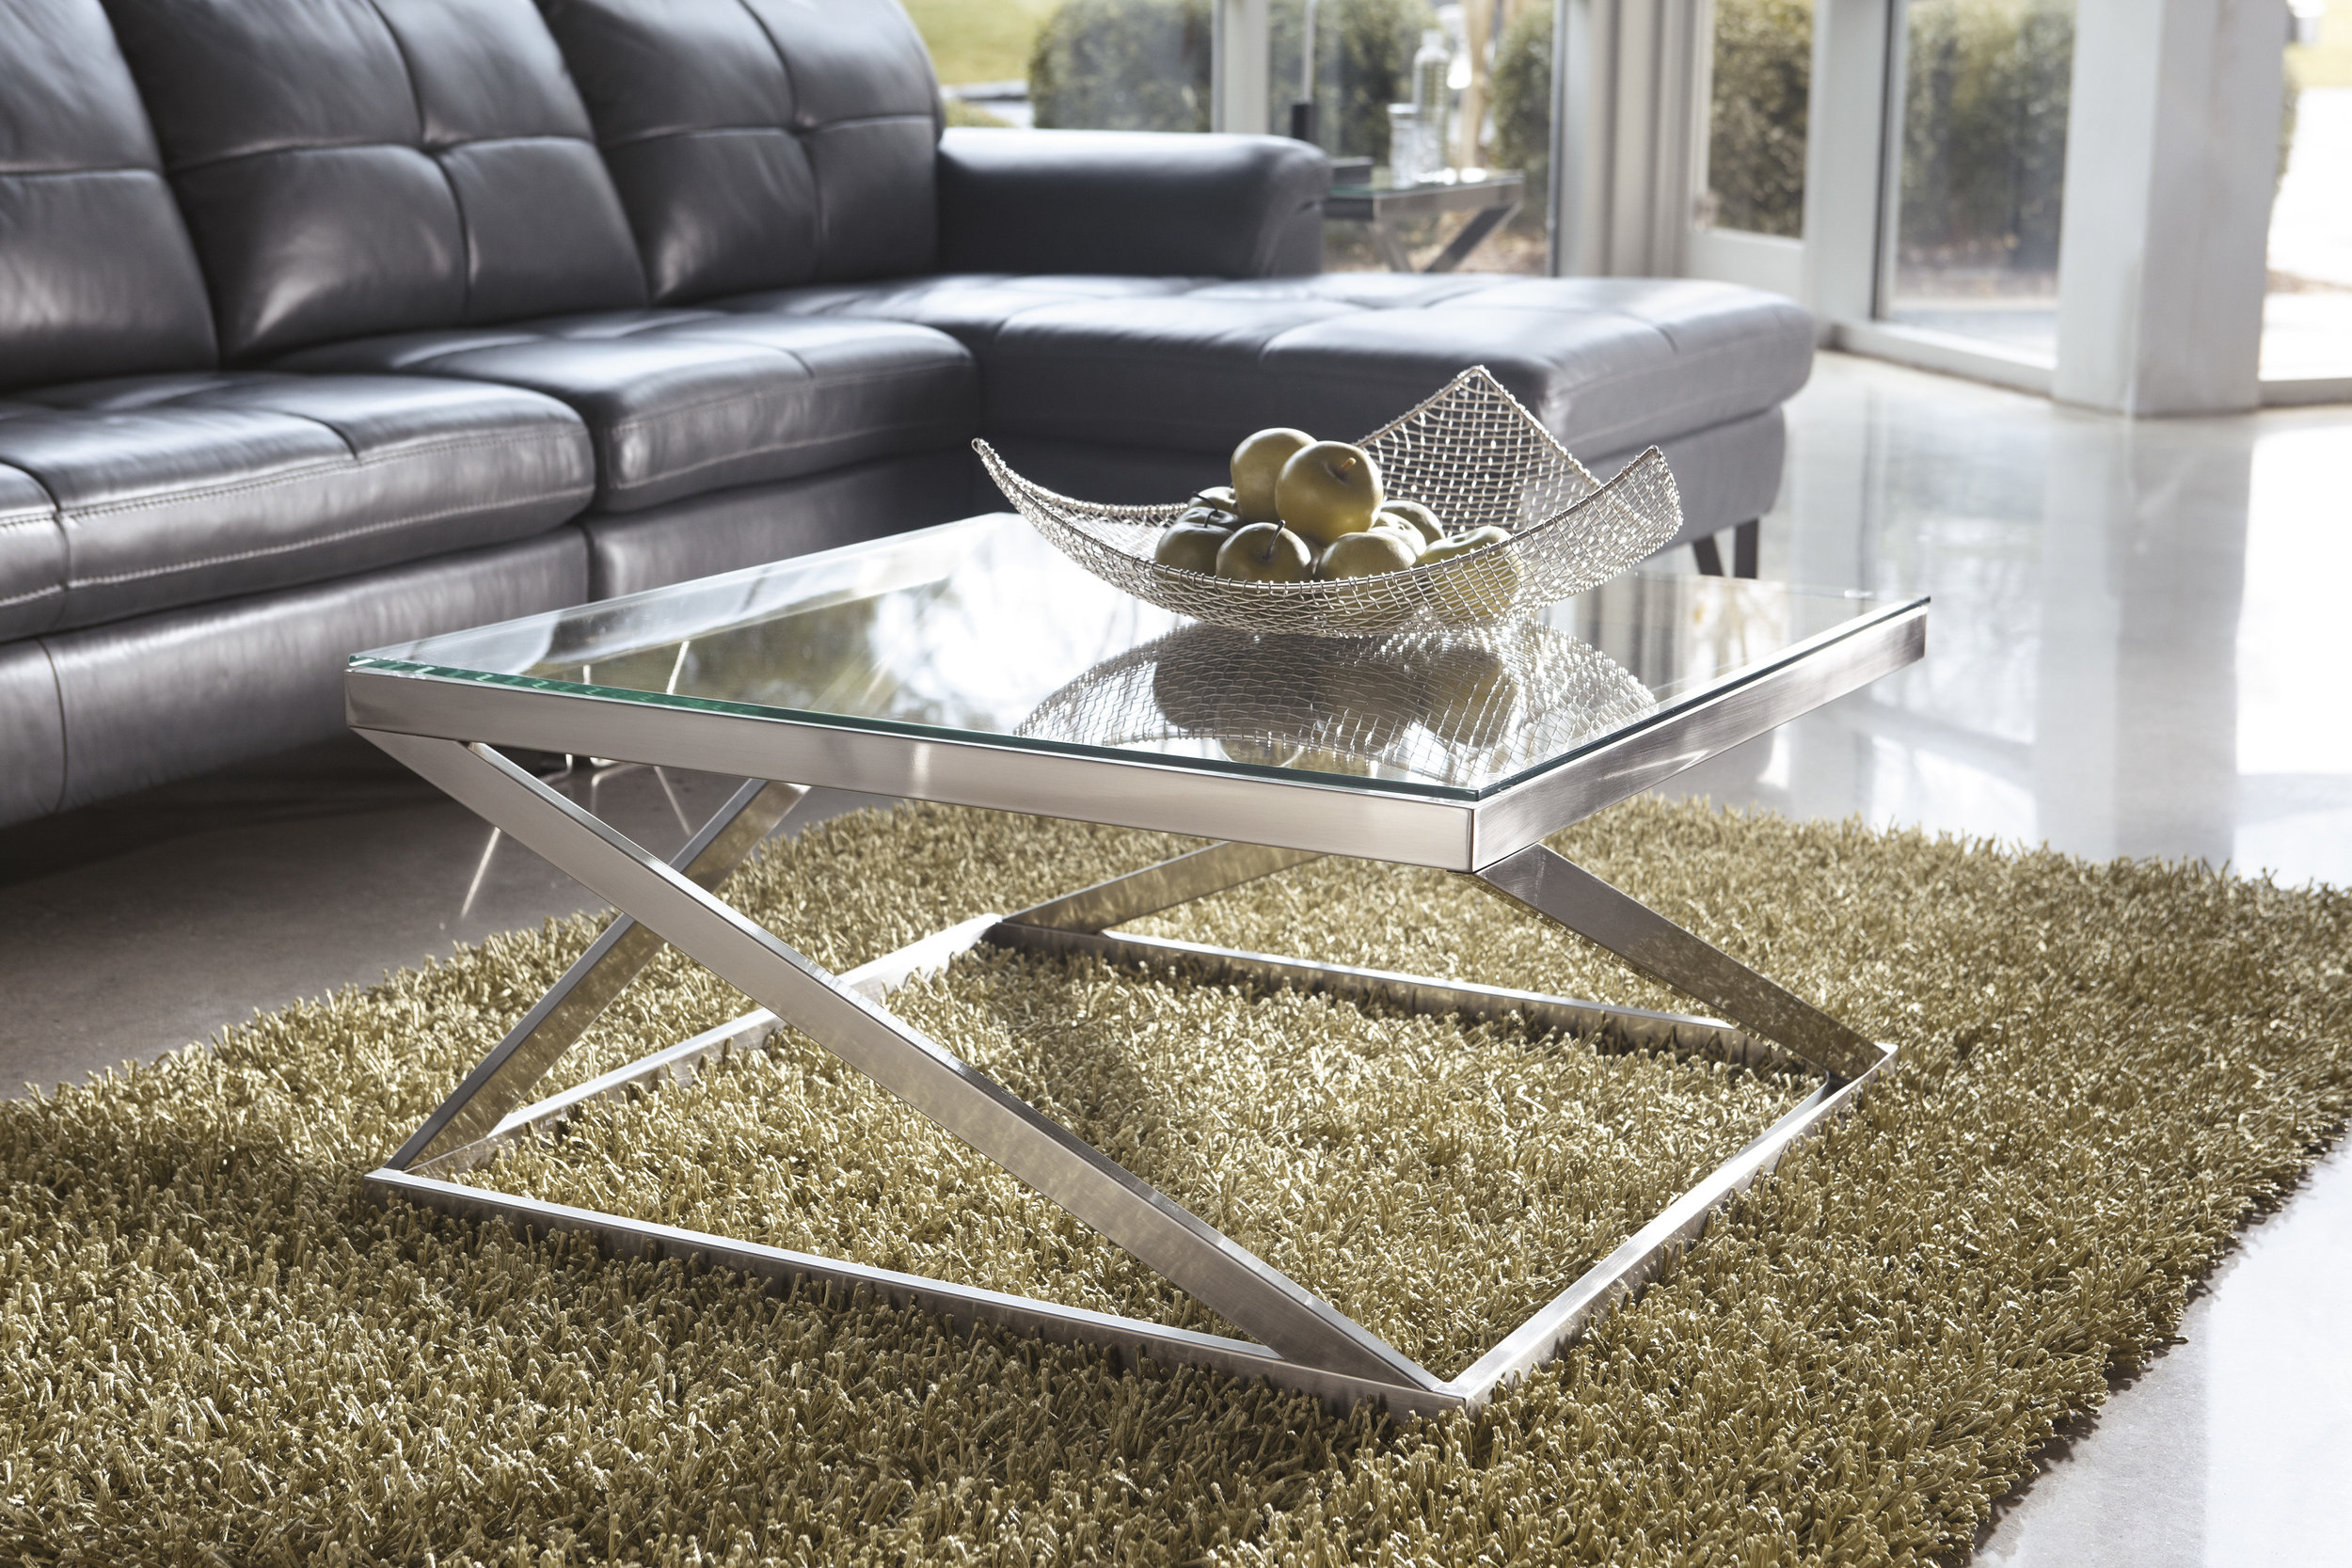 WAREHOUSE PRICE: $199.99 | MONTHLY PAYMENT $4 O.A.C COCKTAIL TABLE